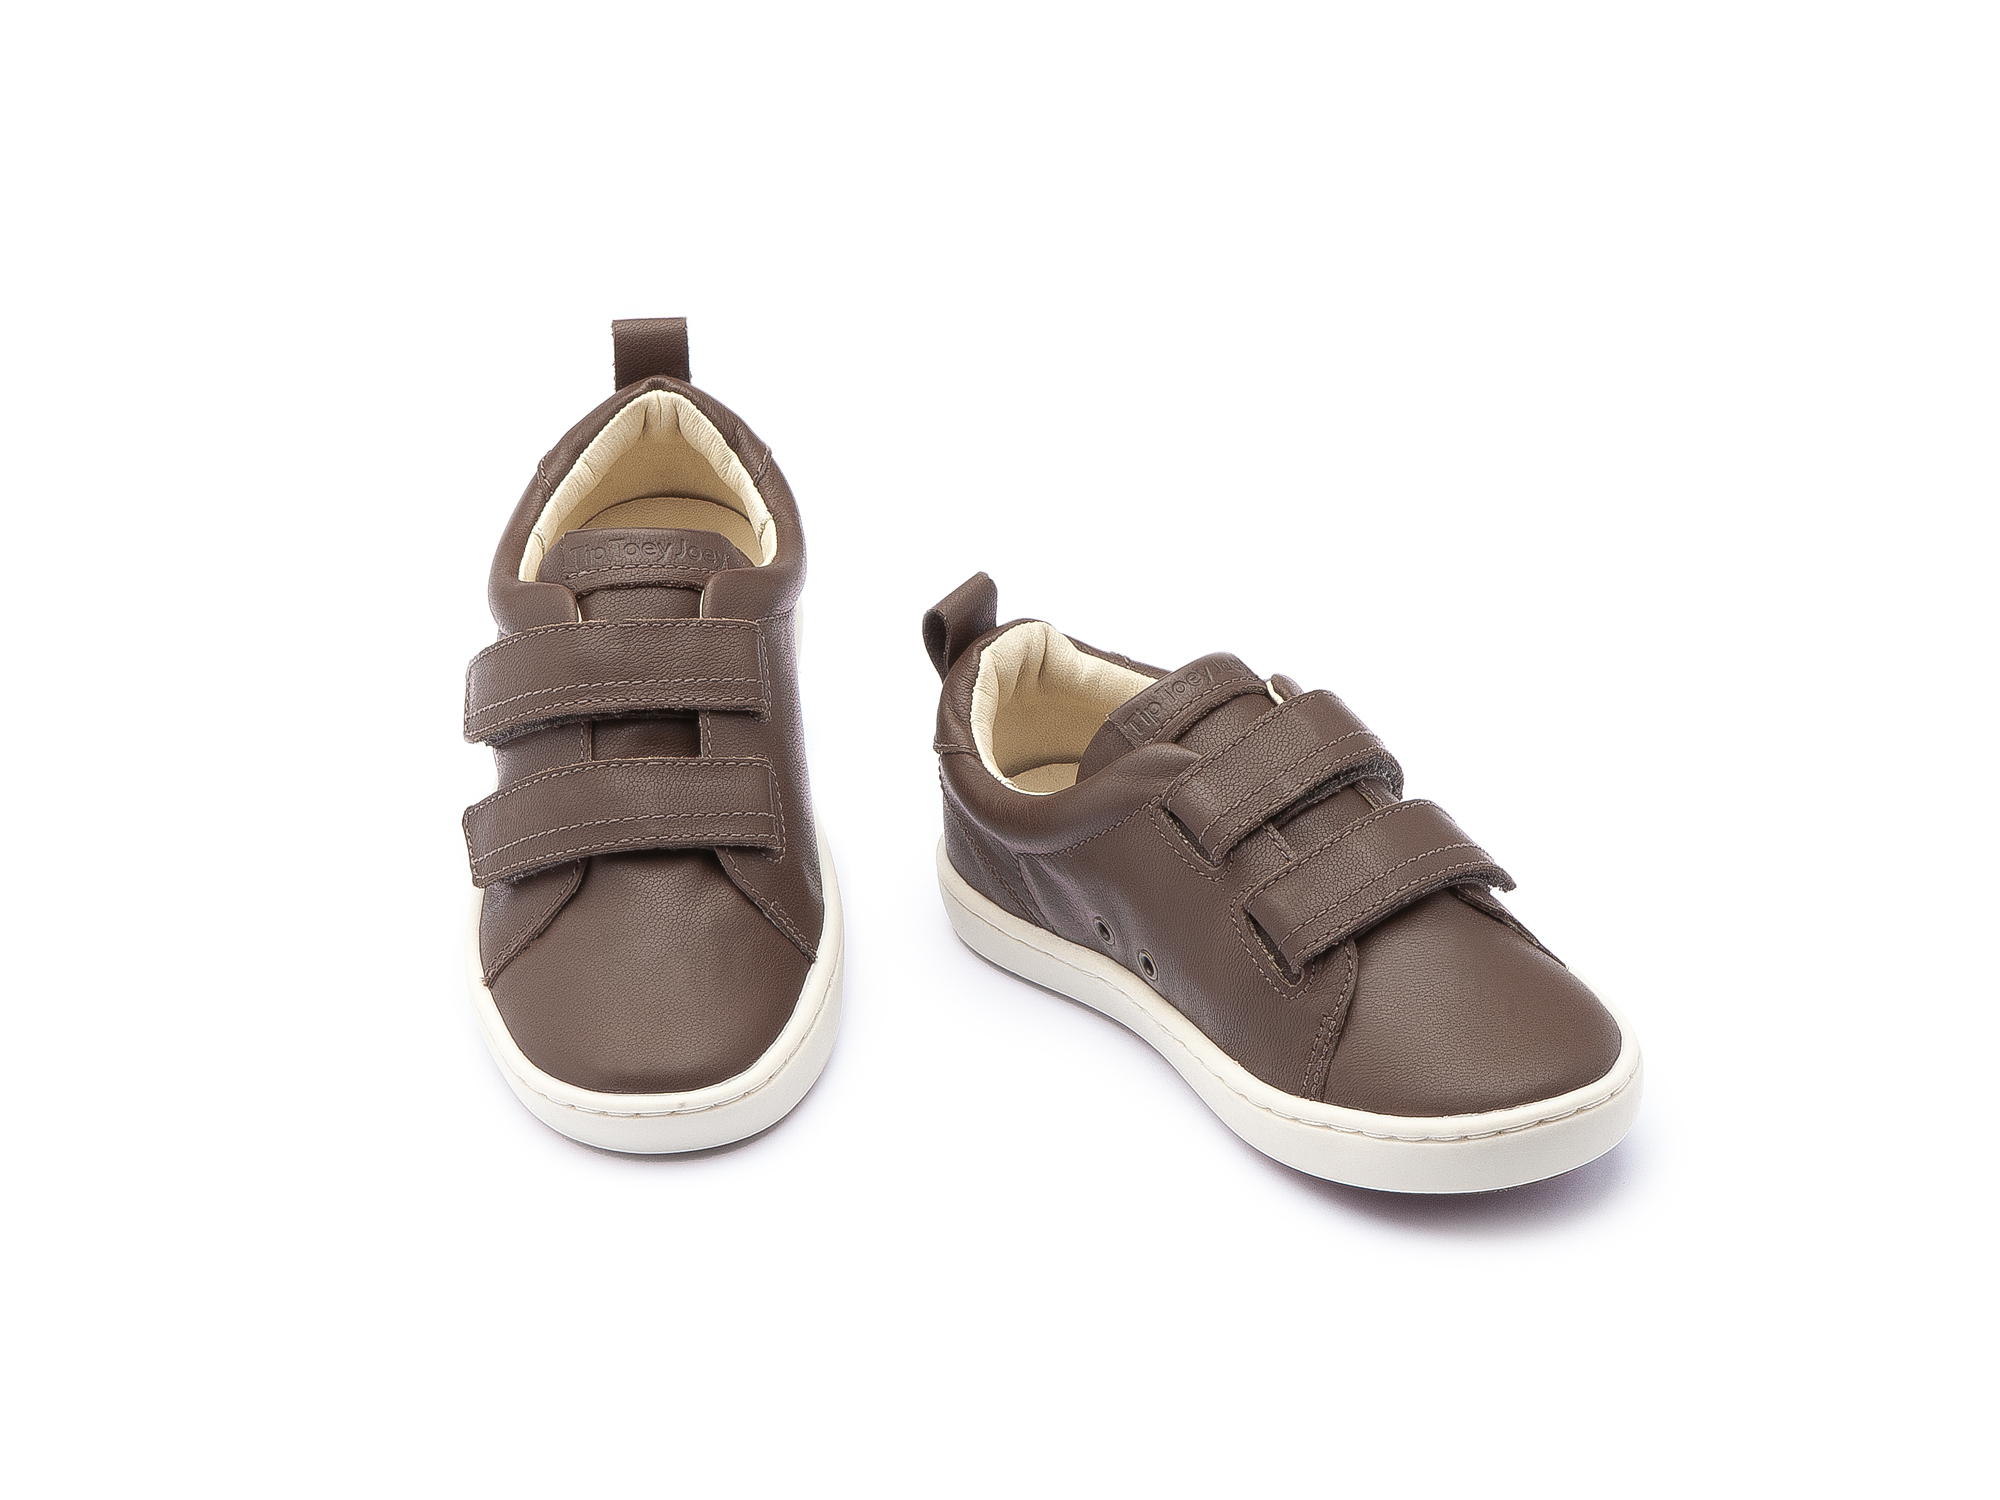 Tênis Little Guide Old Brown  Toddler 2 à 4 anos - 1